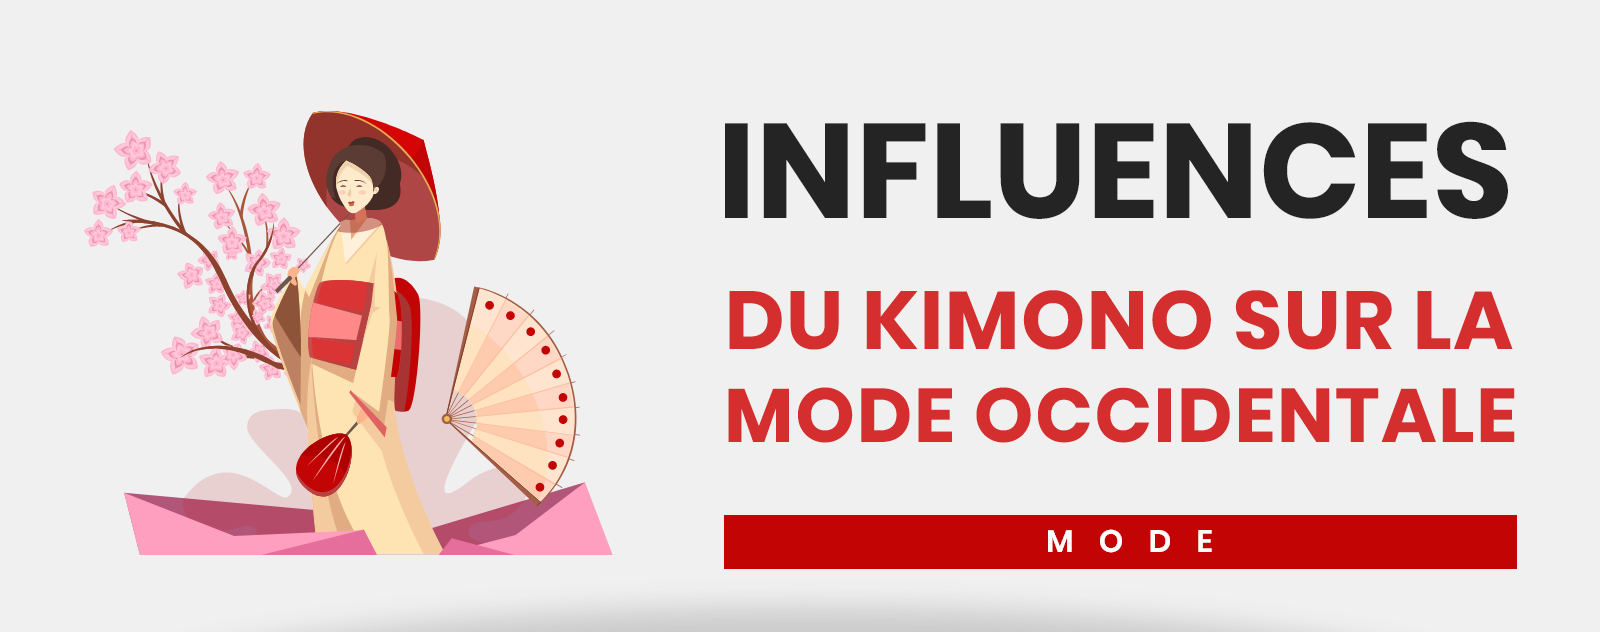 Les Influences du Kimono sur la Mode Occidentale